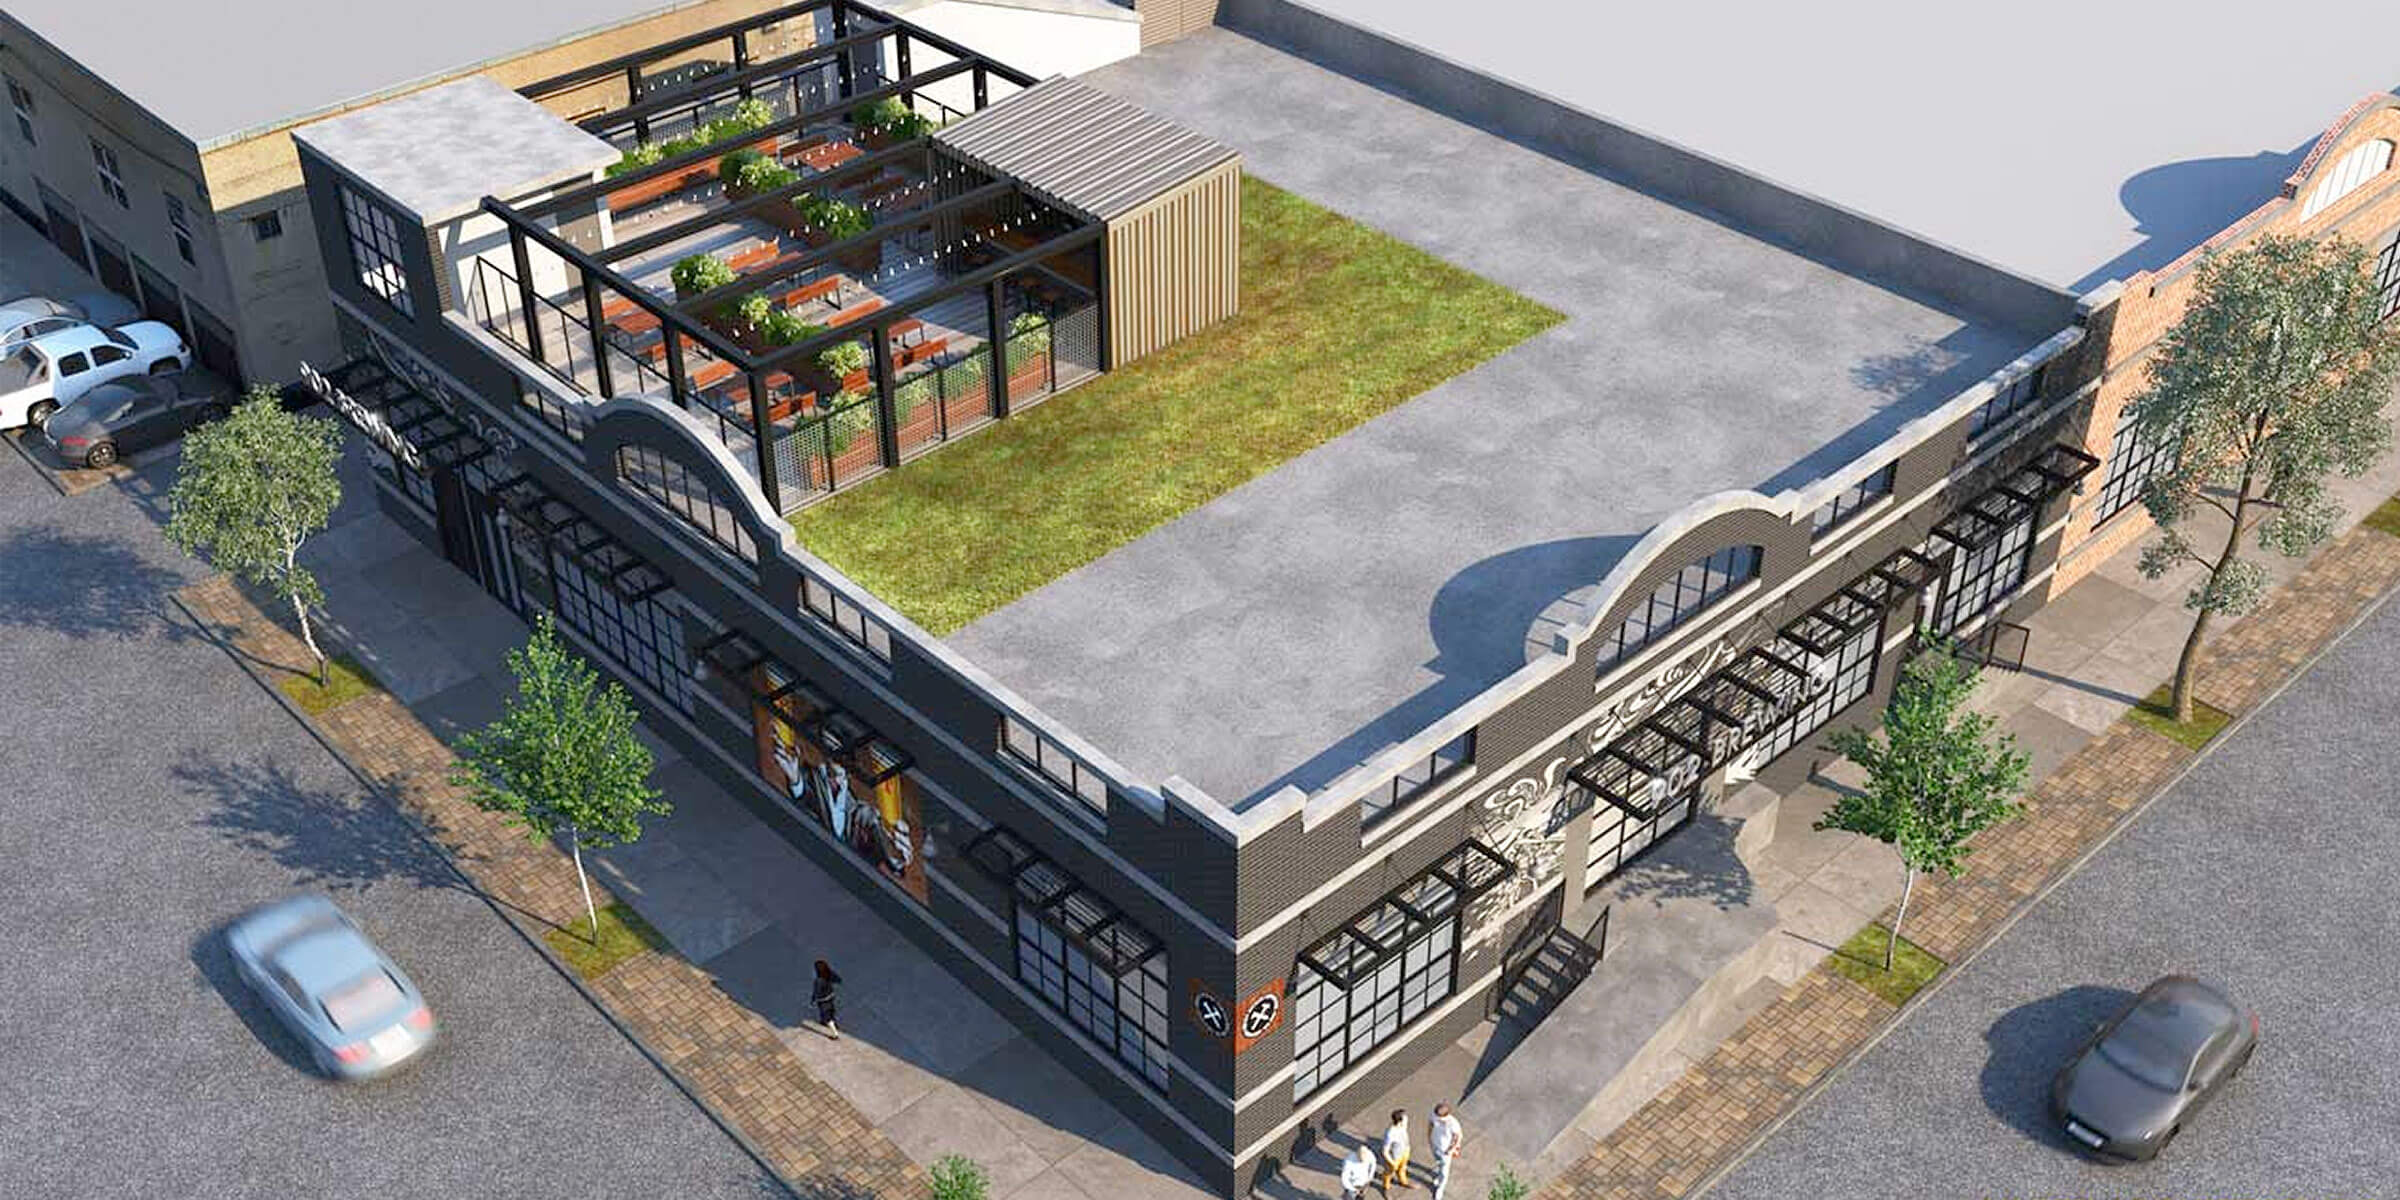 Architectural rendering of the 902 Brewing Company rooftop in Jersey City, New Jersey